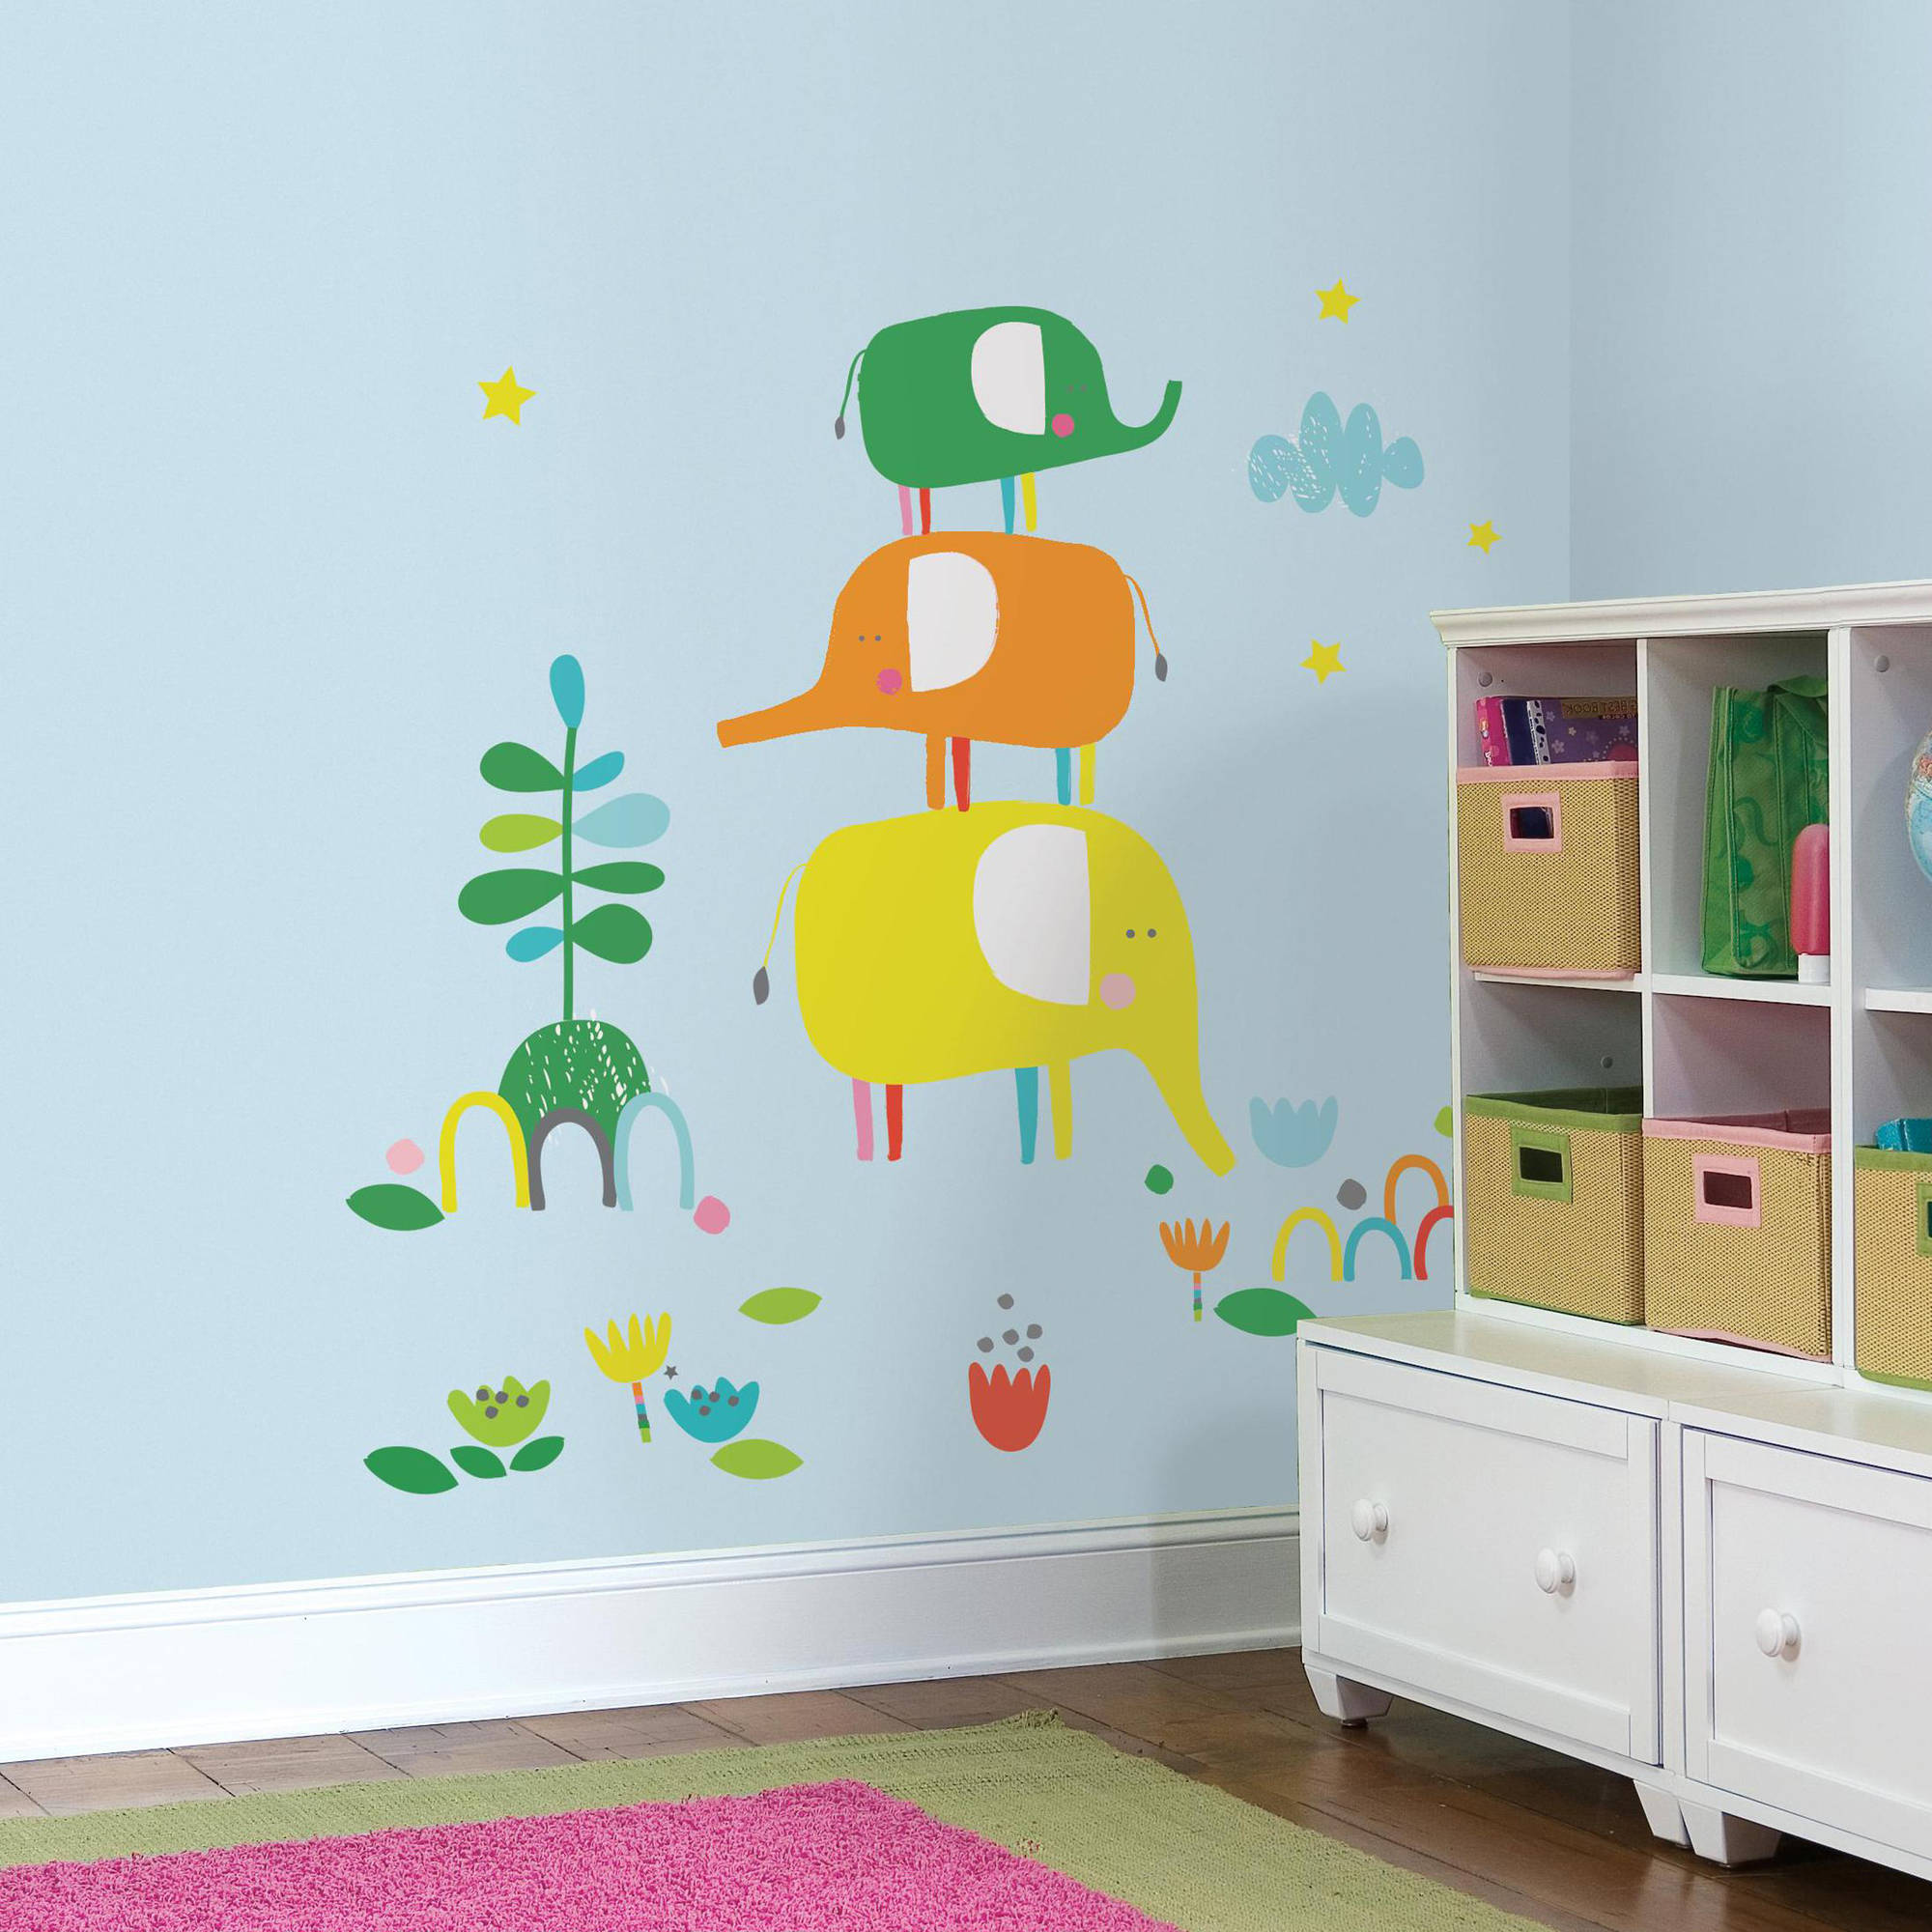 Zutano Elephantasia Peel and Stick Giant Wall Decals